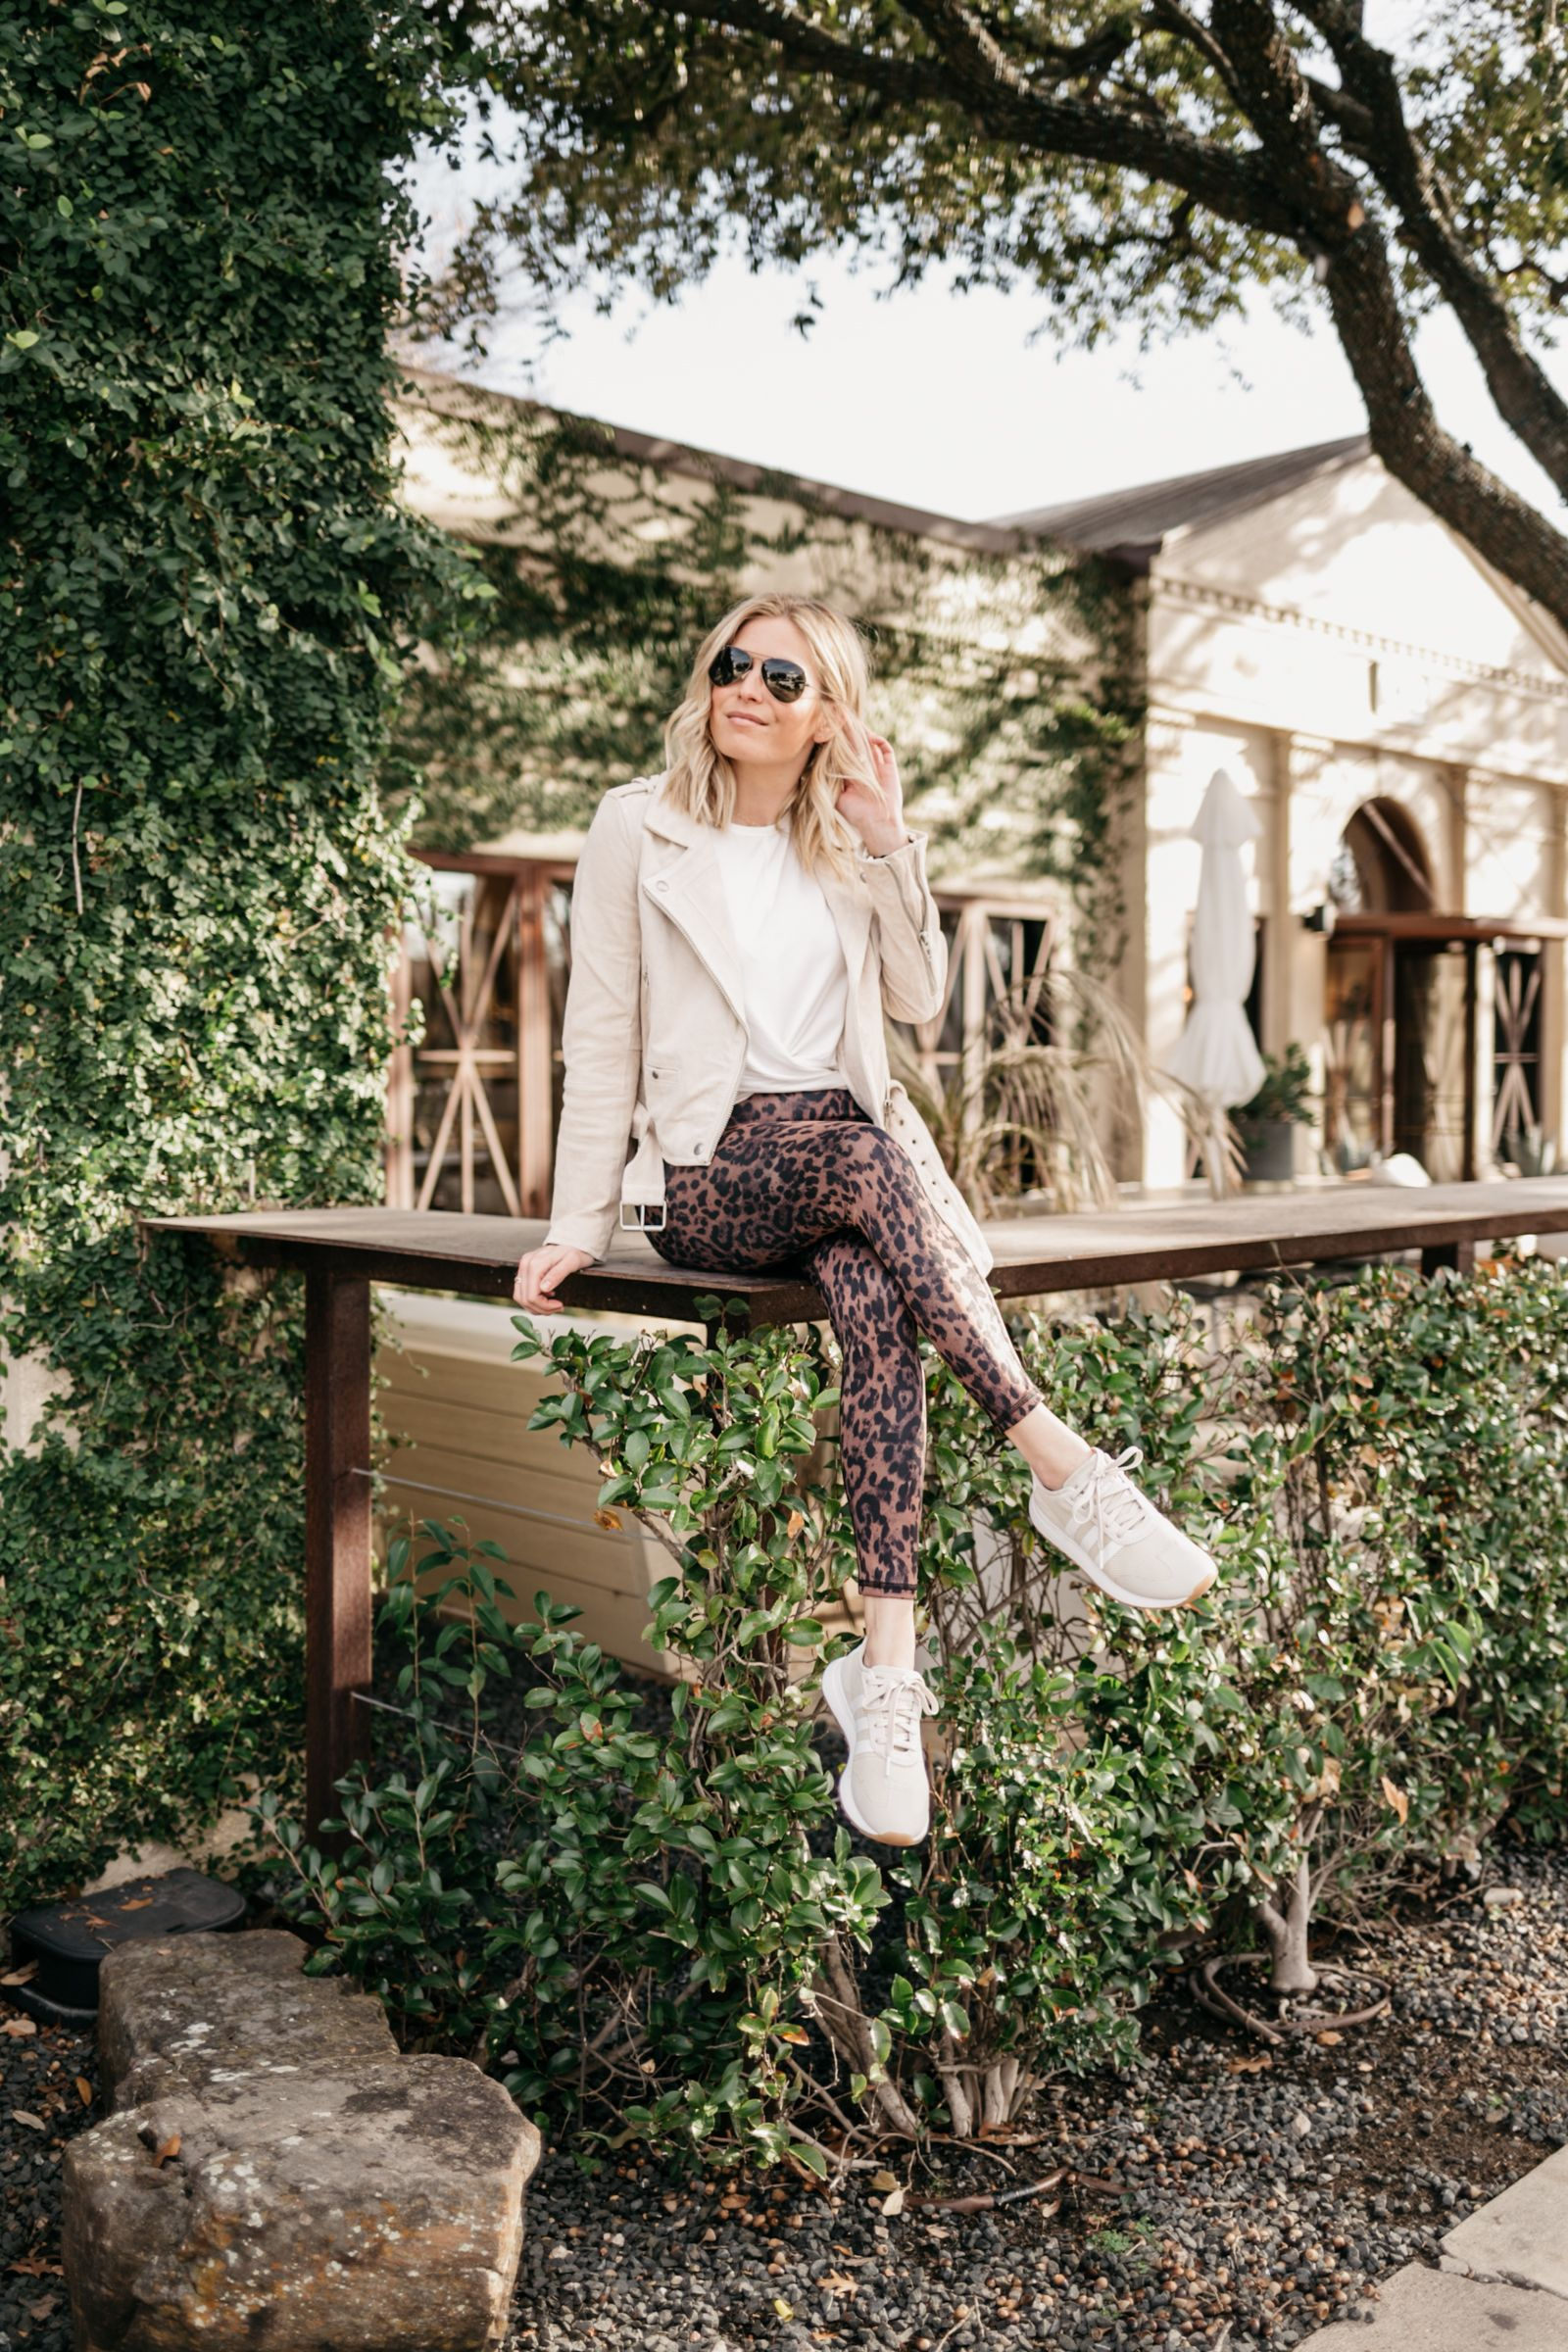 Chic Athleisure Outfits for Fall and Winter |  One Small Blonde #womensfashion #athleisure #fitness